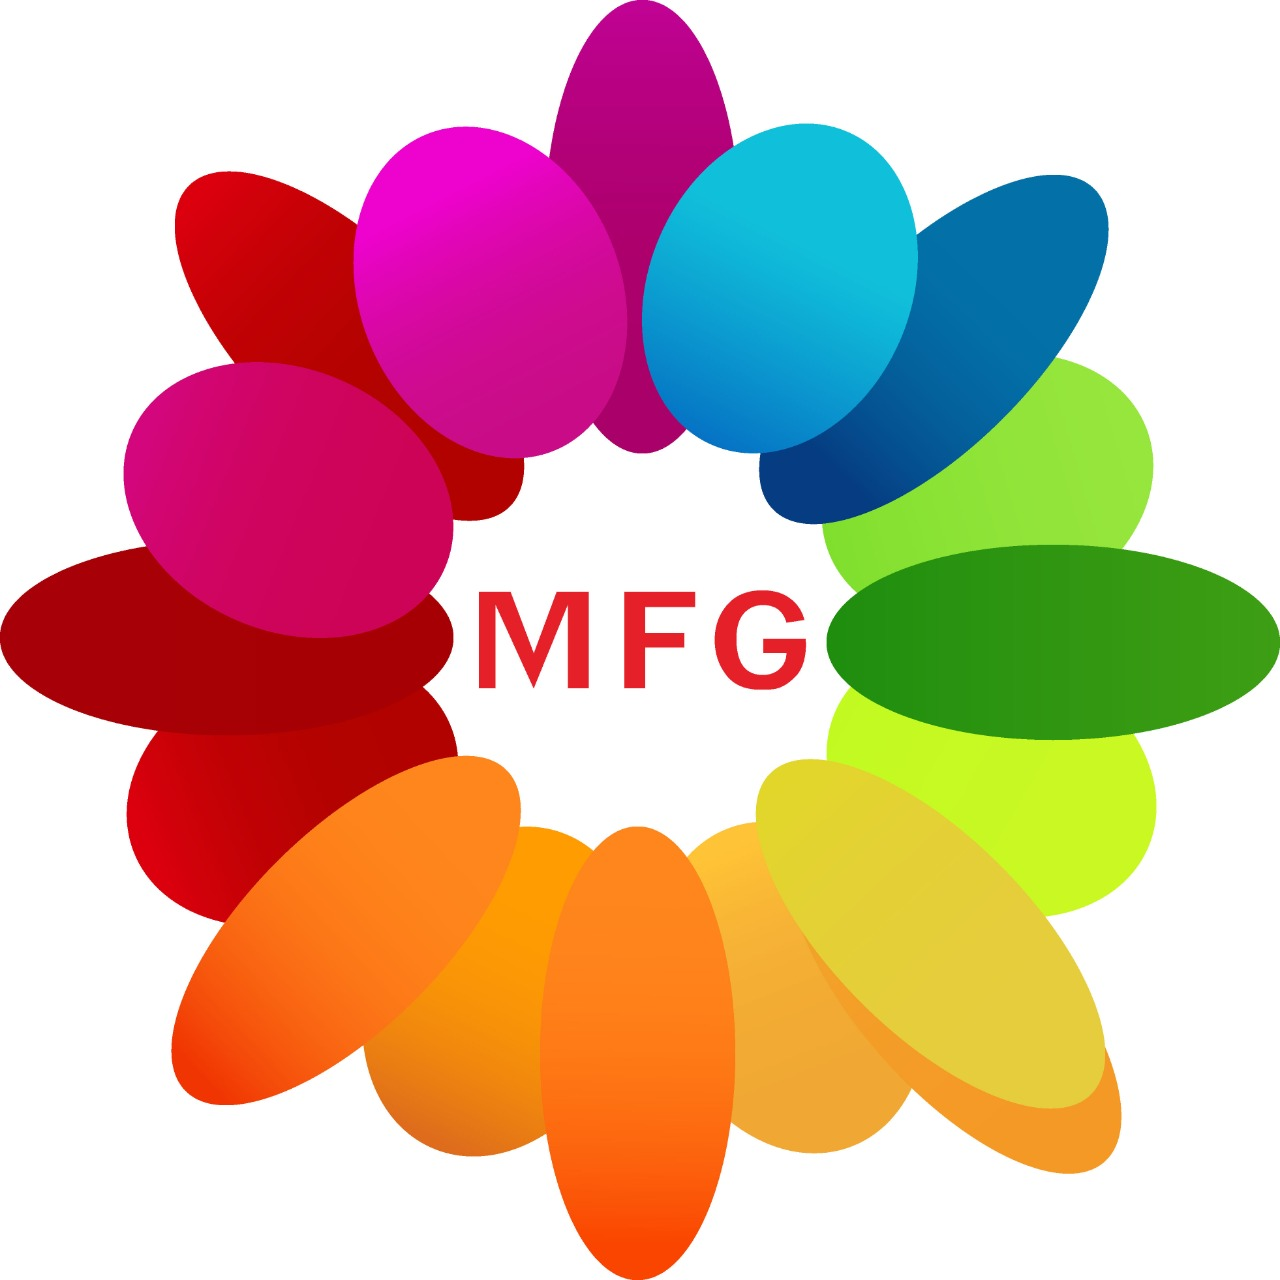 1 kg black forest cake(eggless) with a cute 8 inches teddy bear with 3 pcs of balloons